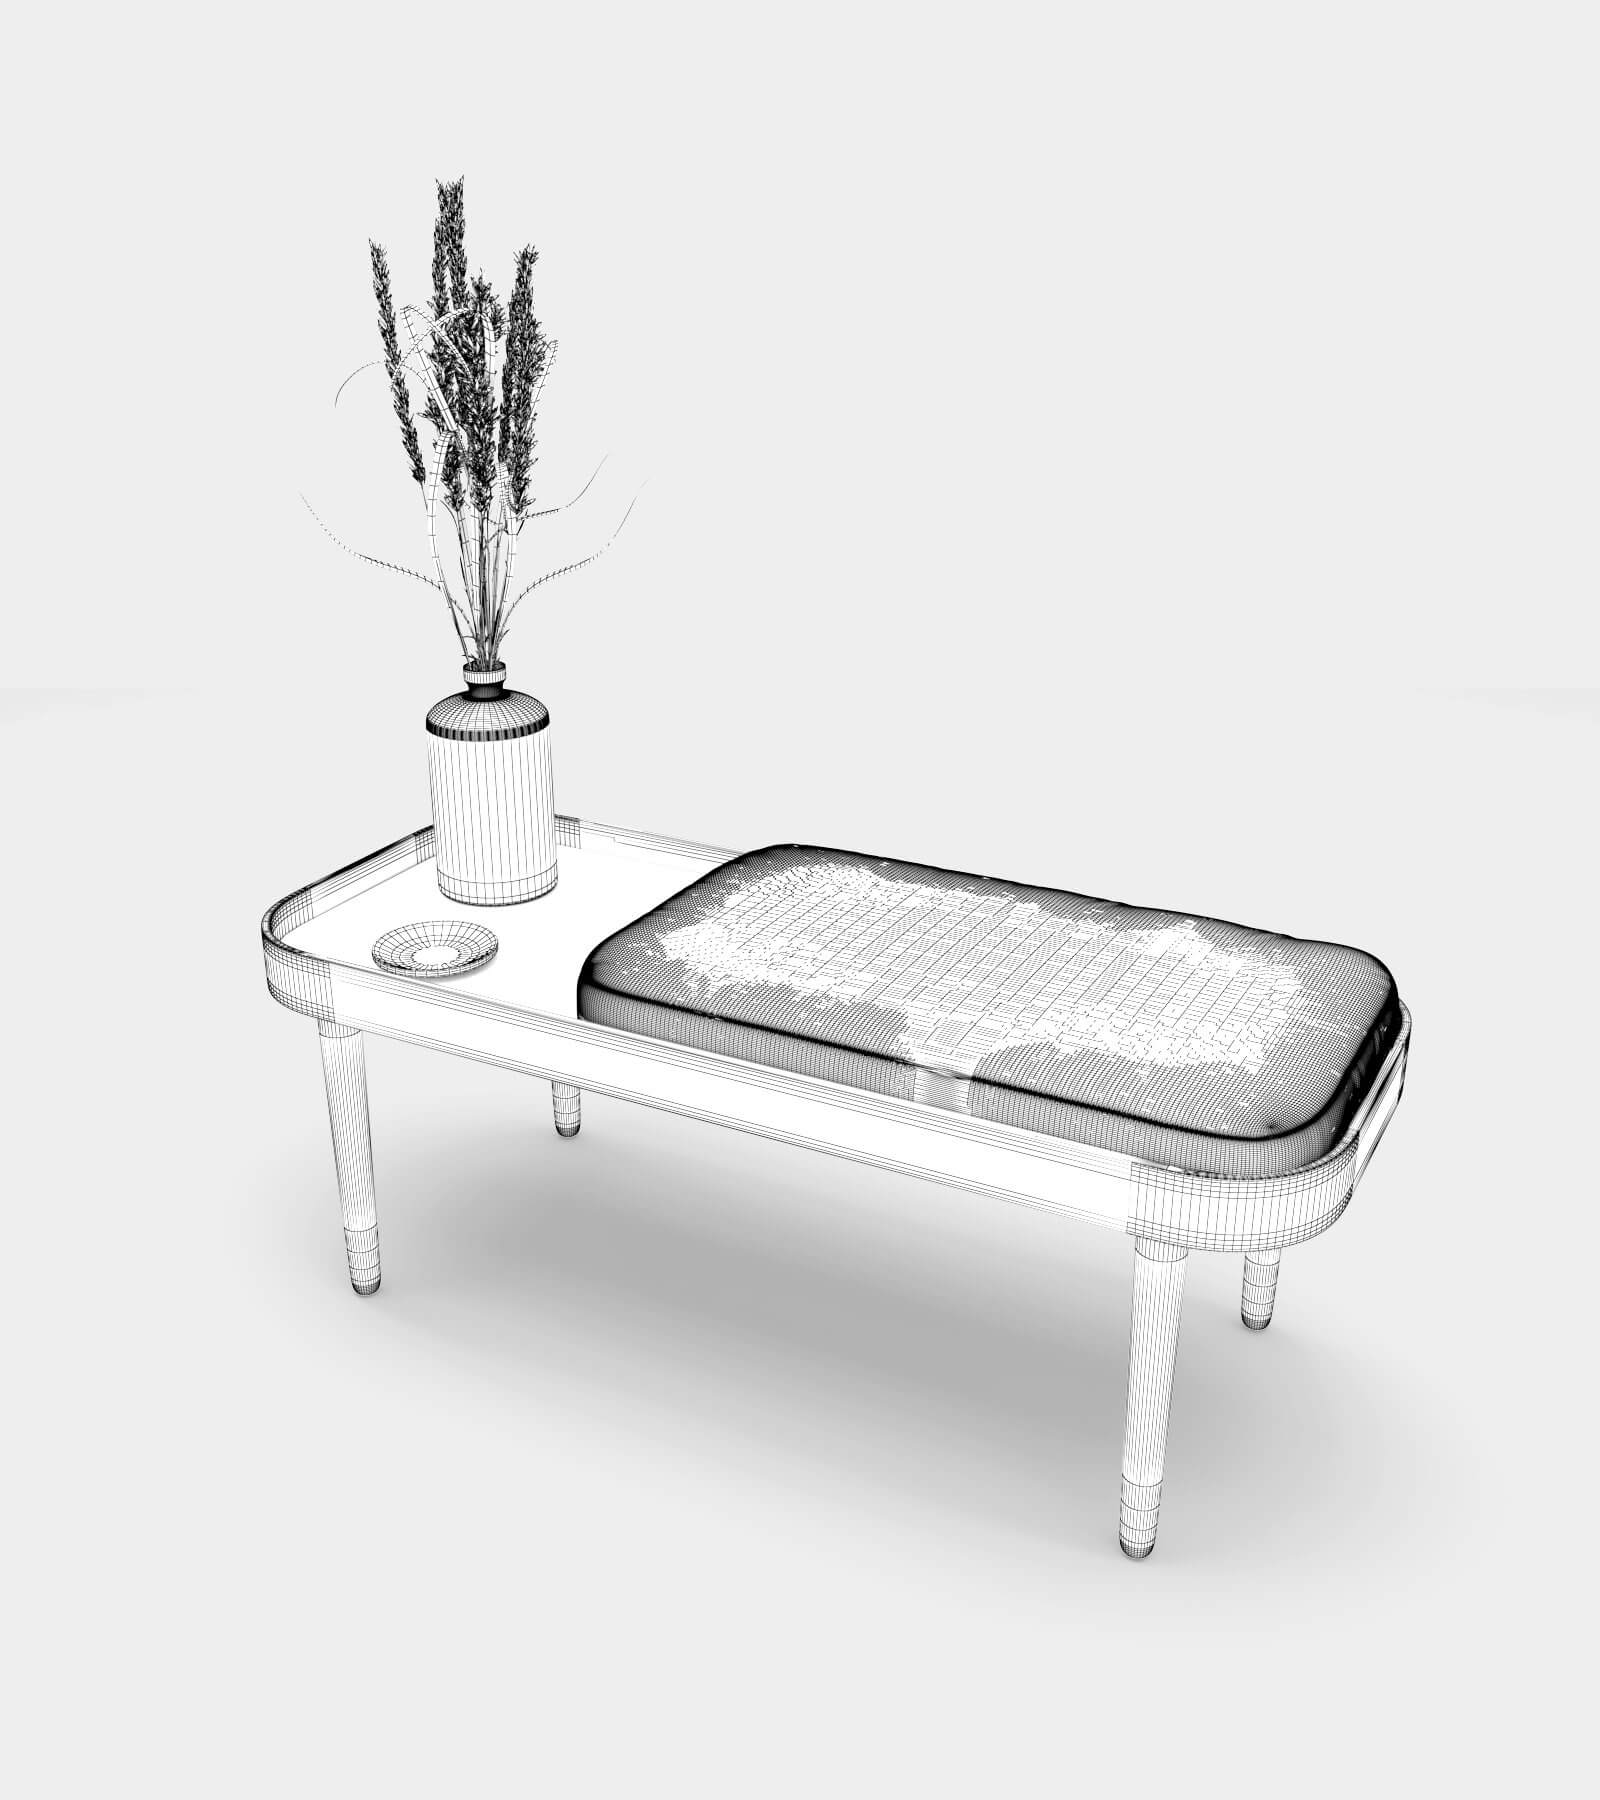 Wooden bench with accessories-wire-2 3D Model